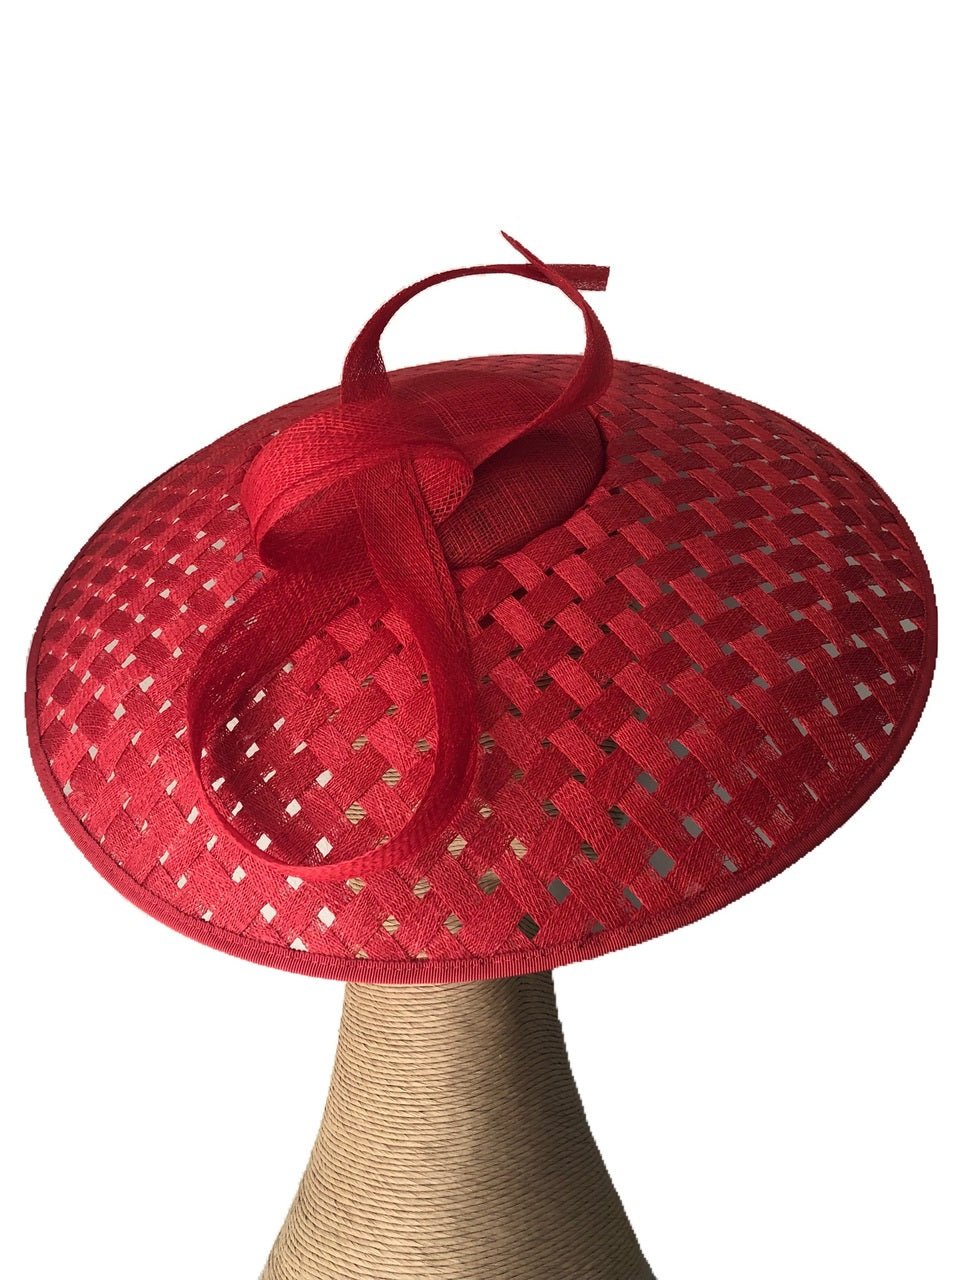 Fiona Powell Audrey Hat in Red on a Headband